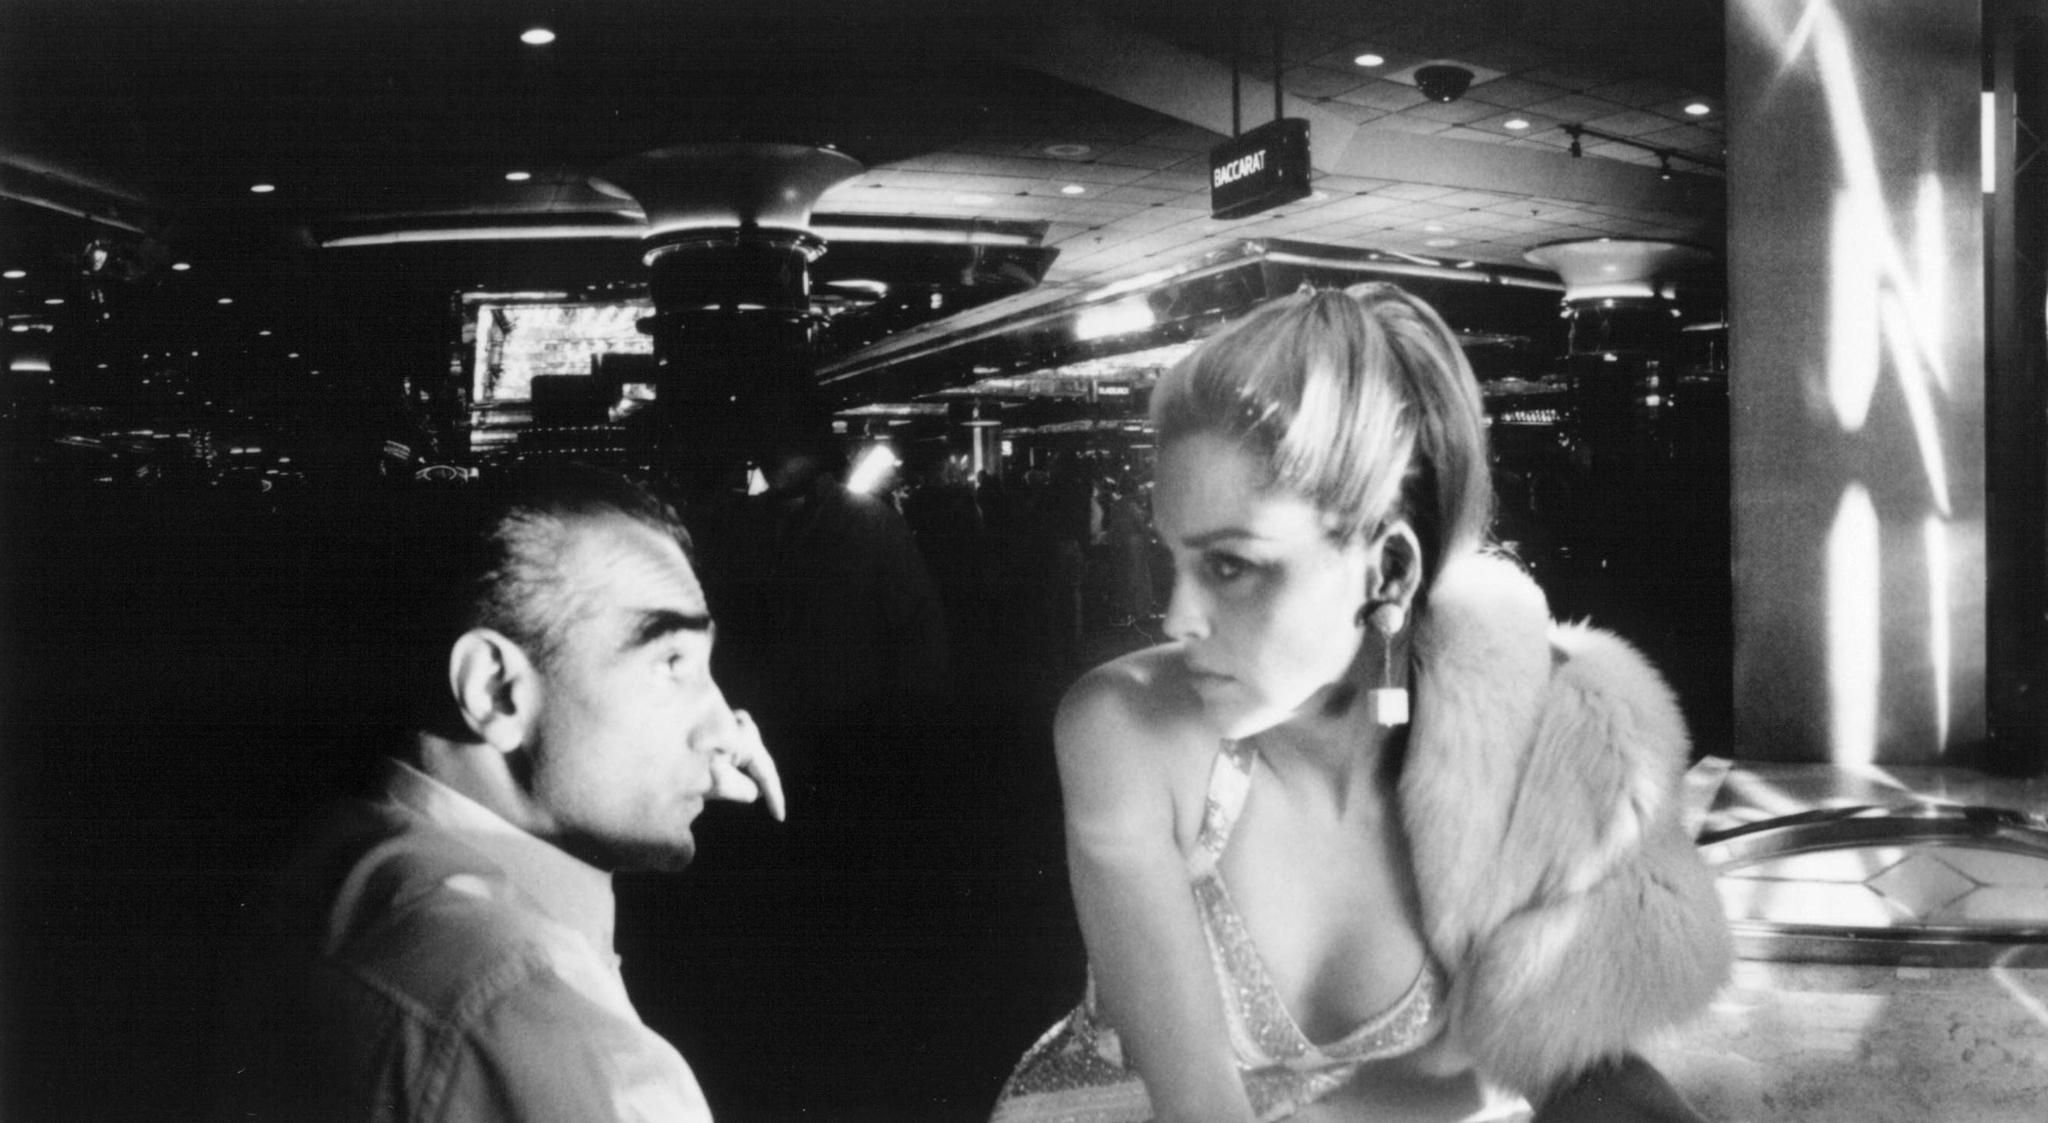 Martin Scorsese On-Set With Sharon Stone